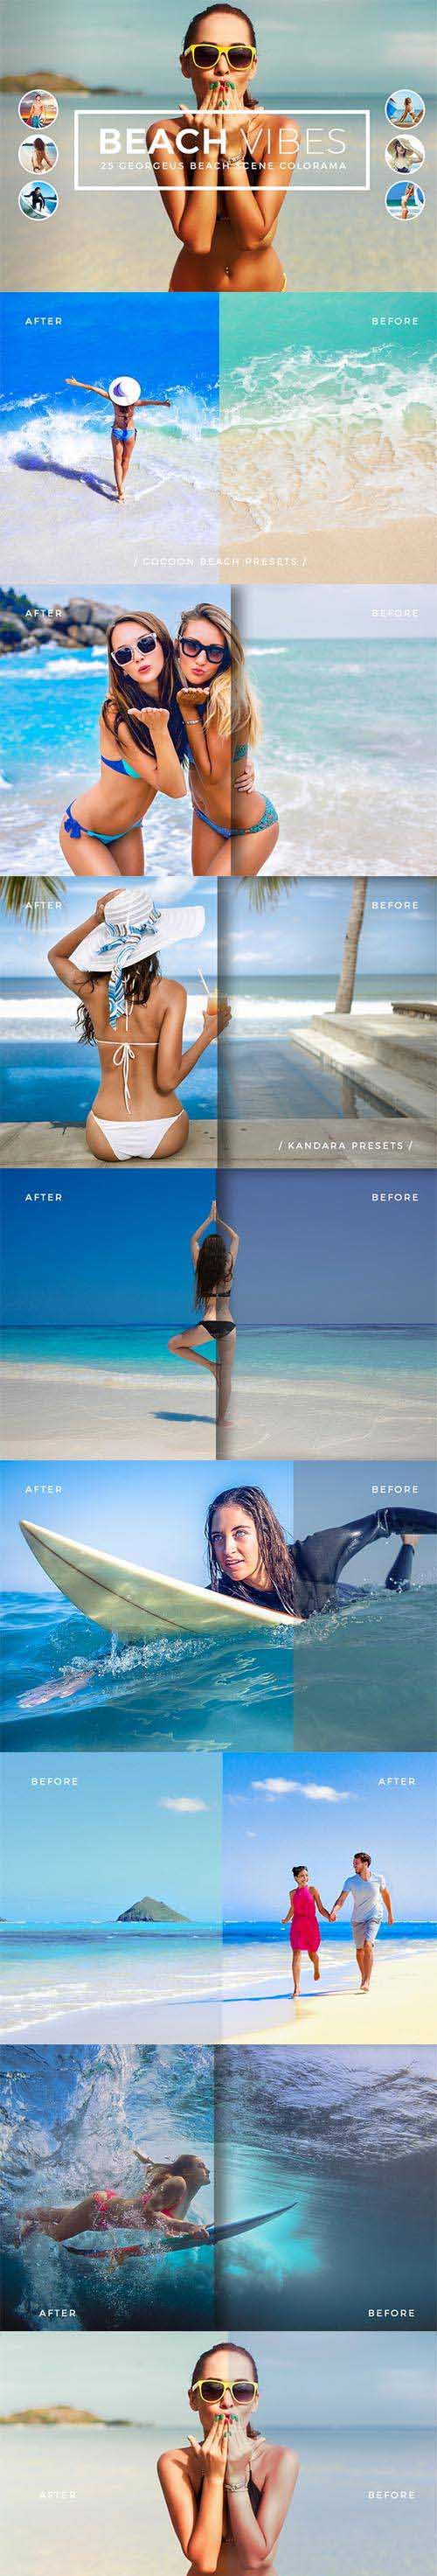 Beach Vibes Photoshop Actions 667704